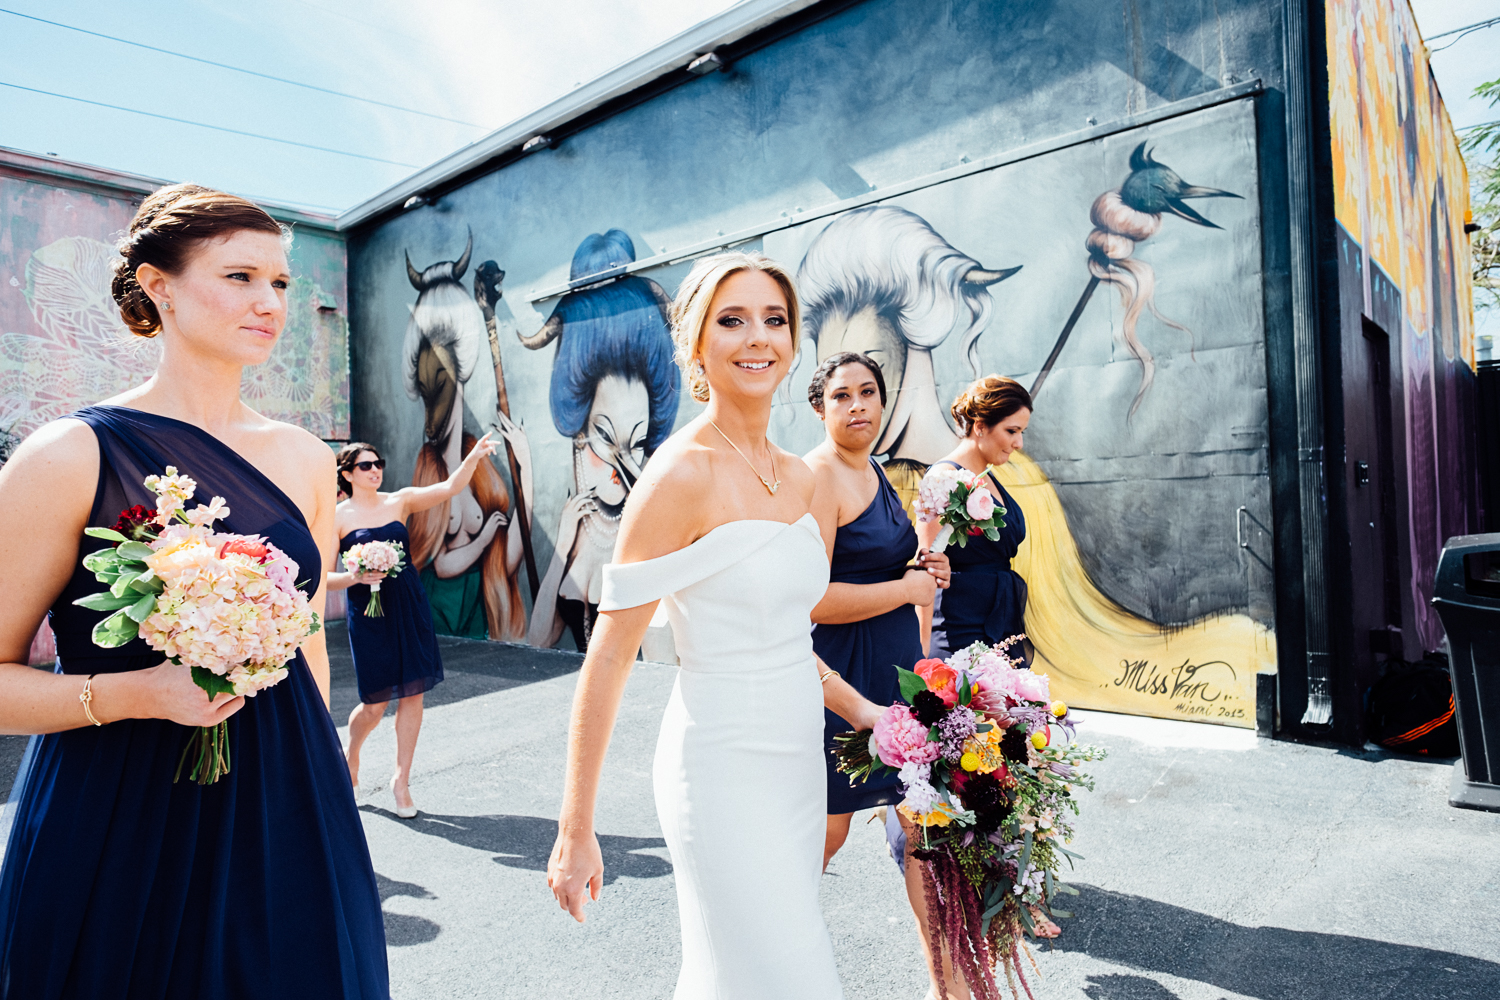 Jessenia Gonzalez Photography-Wynwood-Miami-Wedding-Bridesmaids-groomsmen (5 of 40).jpg